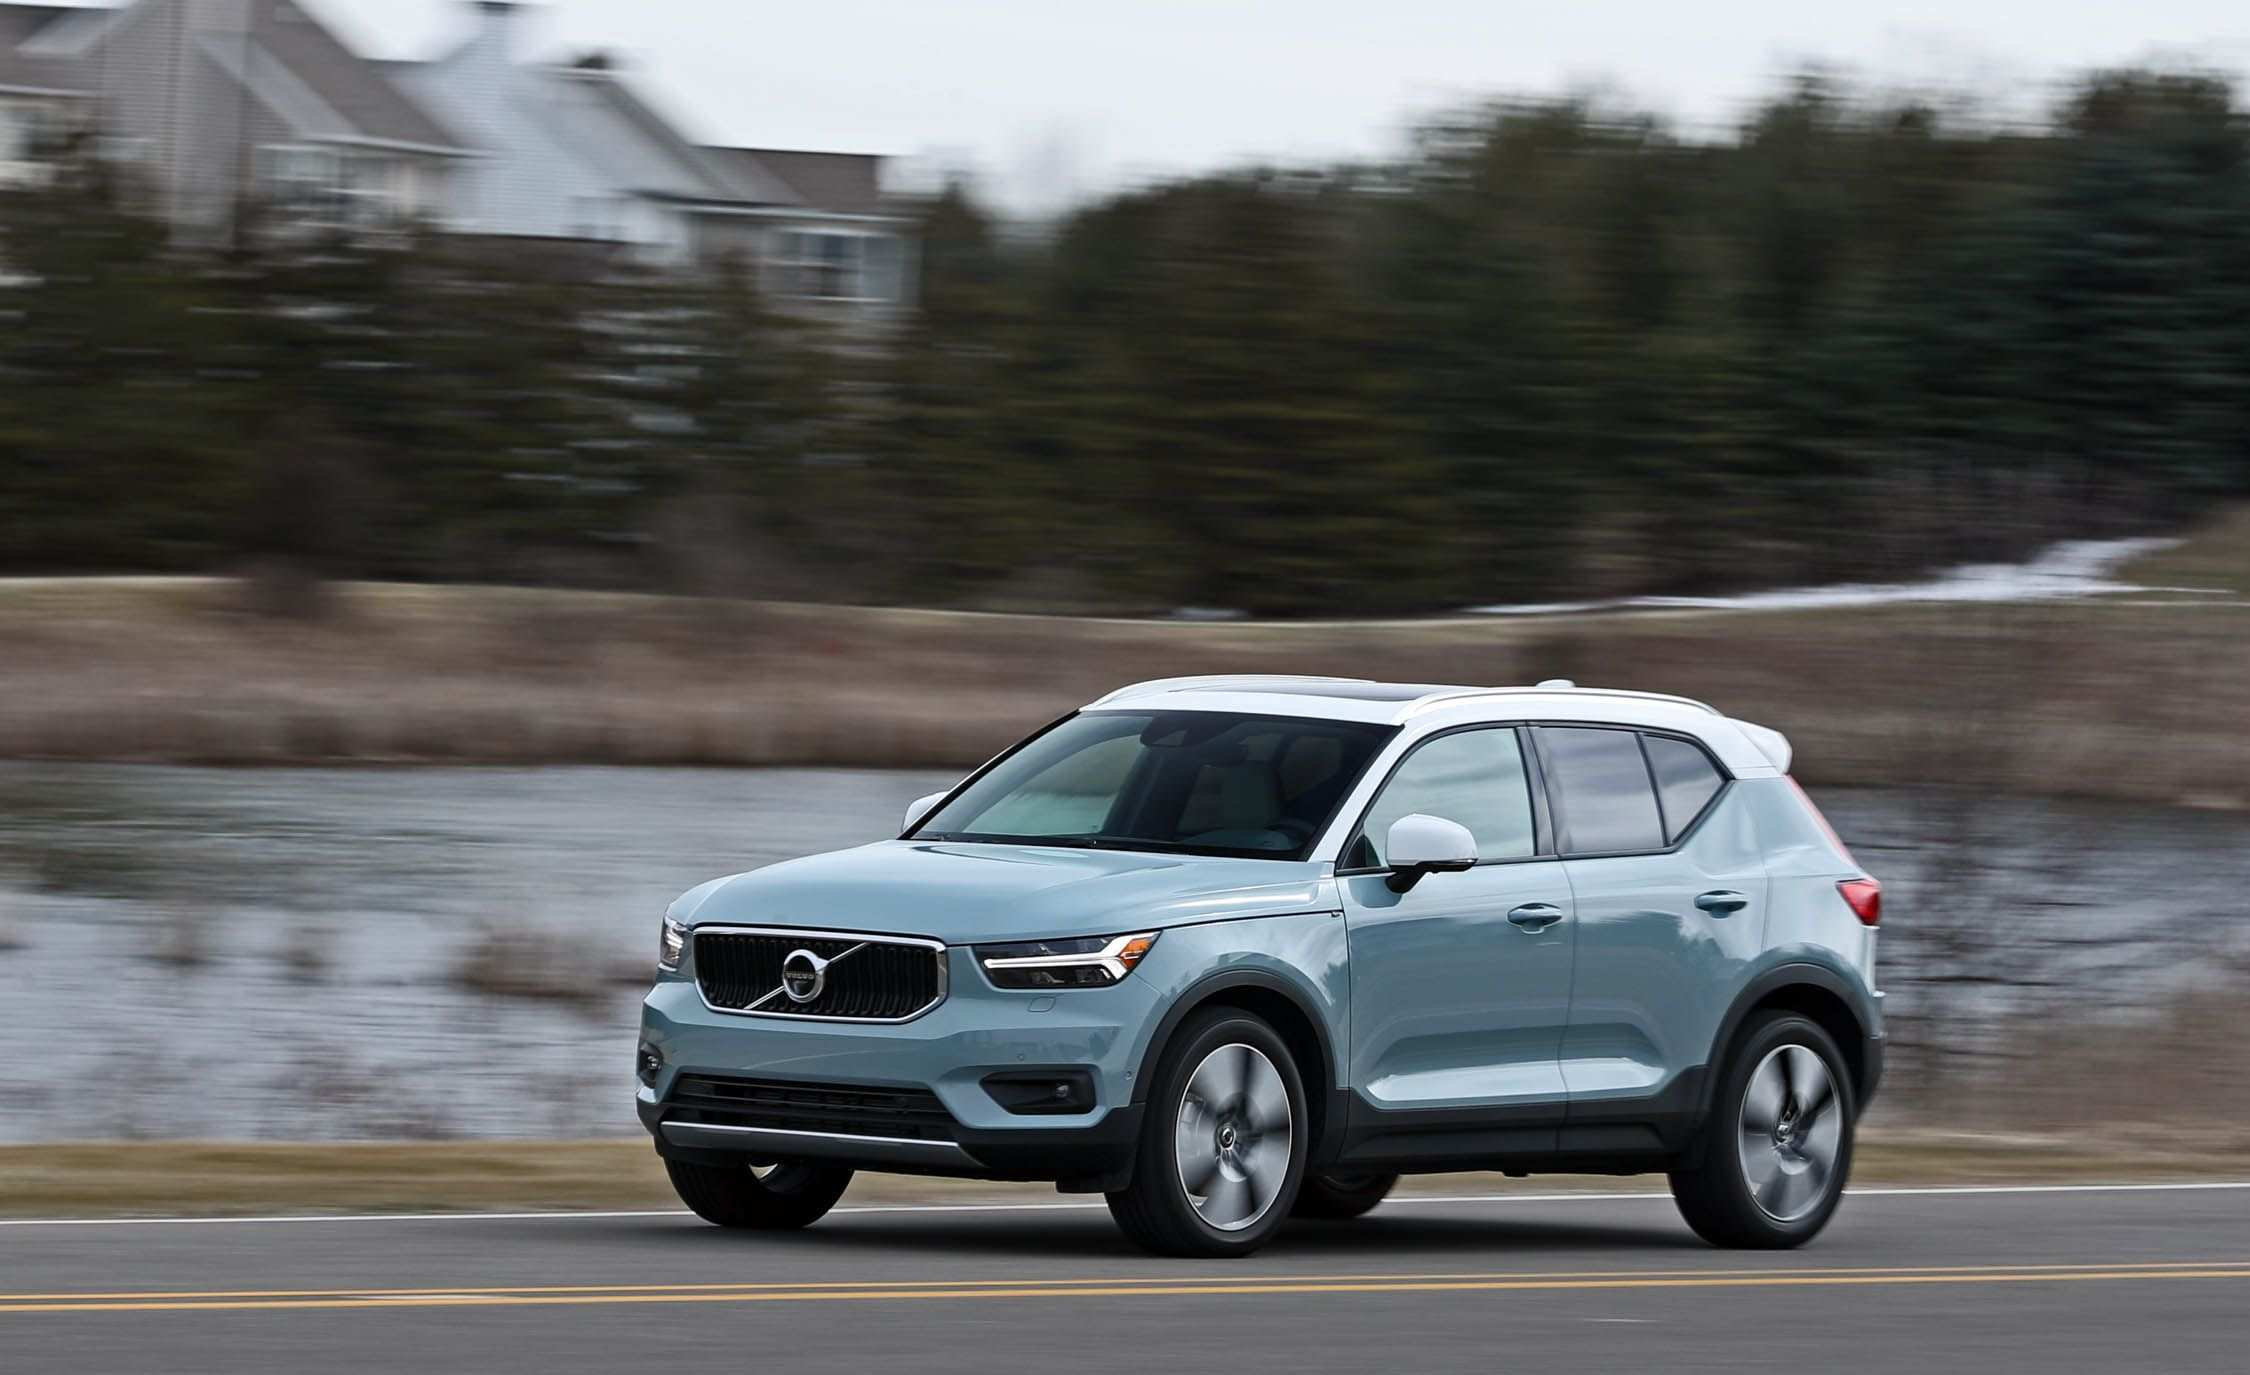 95 New 2019 Volvo Xc40 Length Overview for 2019 Volvo Xc40 Length